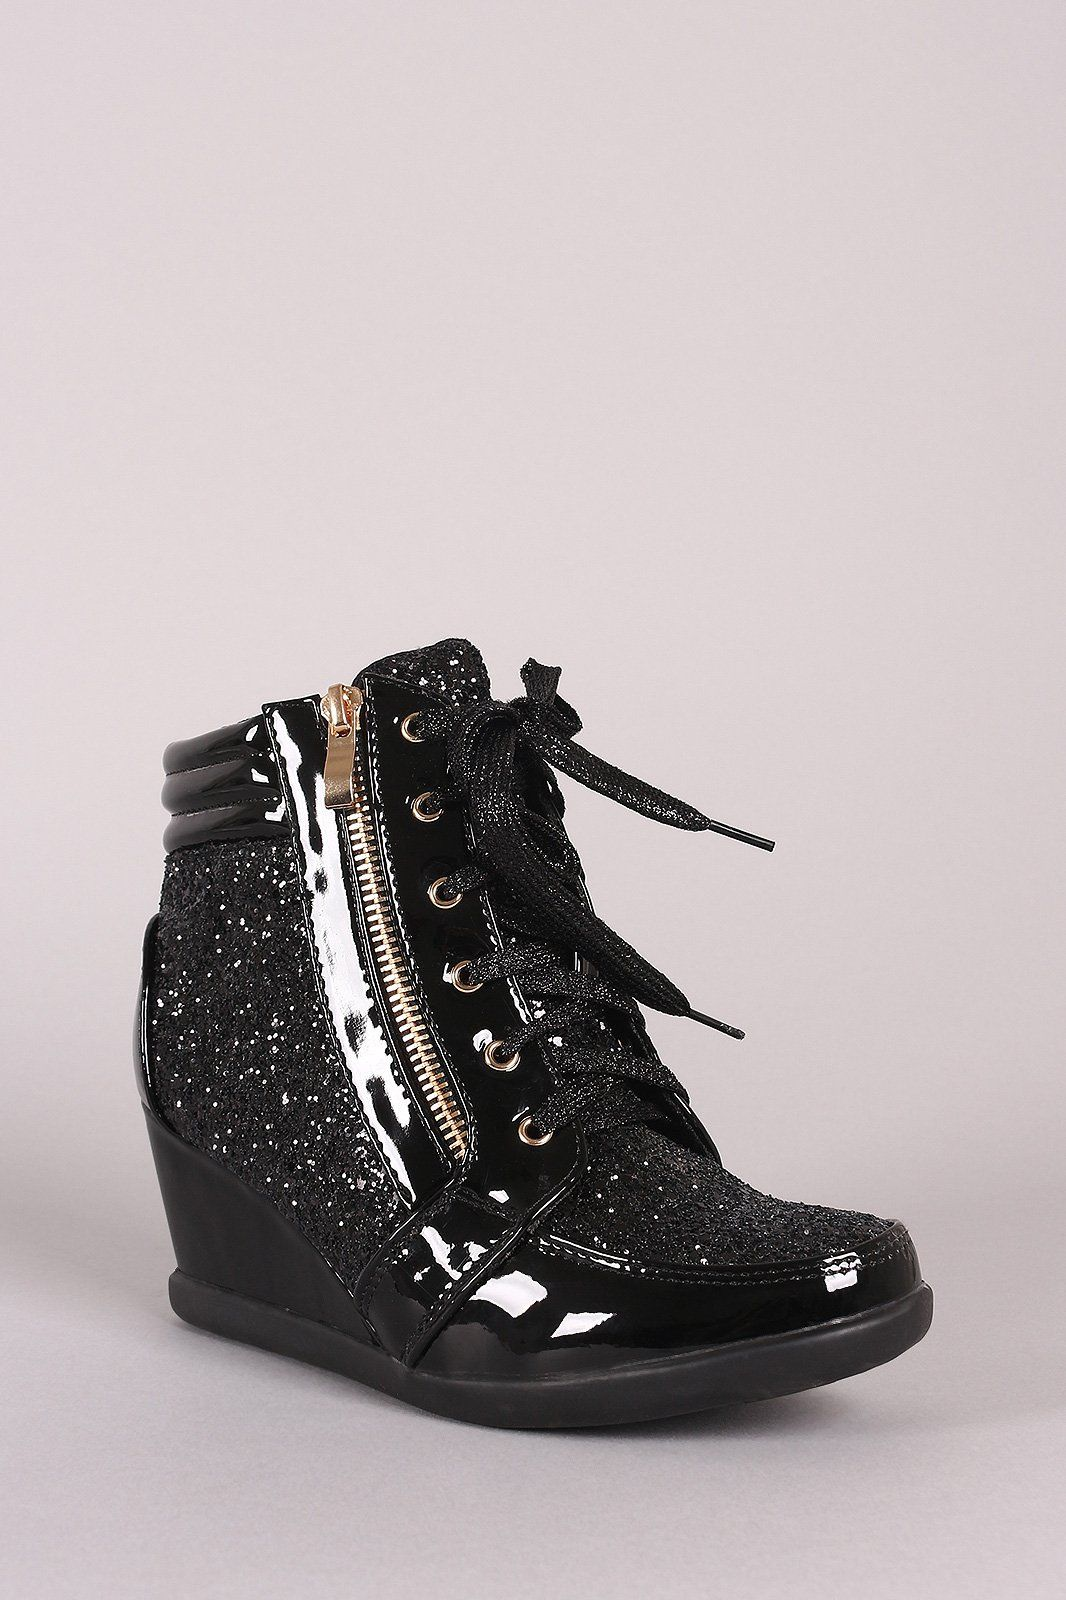 5cdf25f74fc Lace Up · This high top wedge sneaker features a shiny patent upper with  sparkling glitter accents